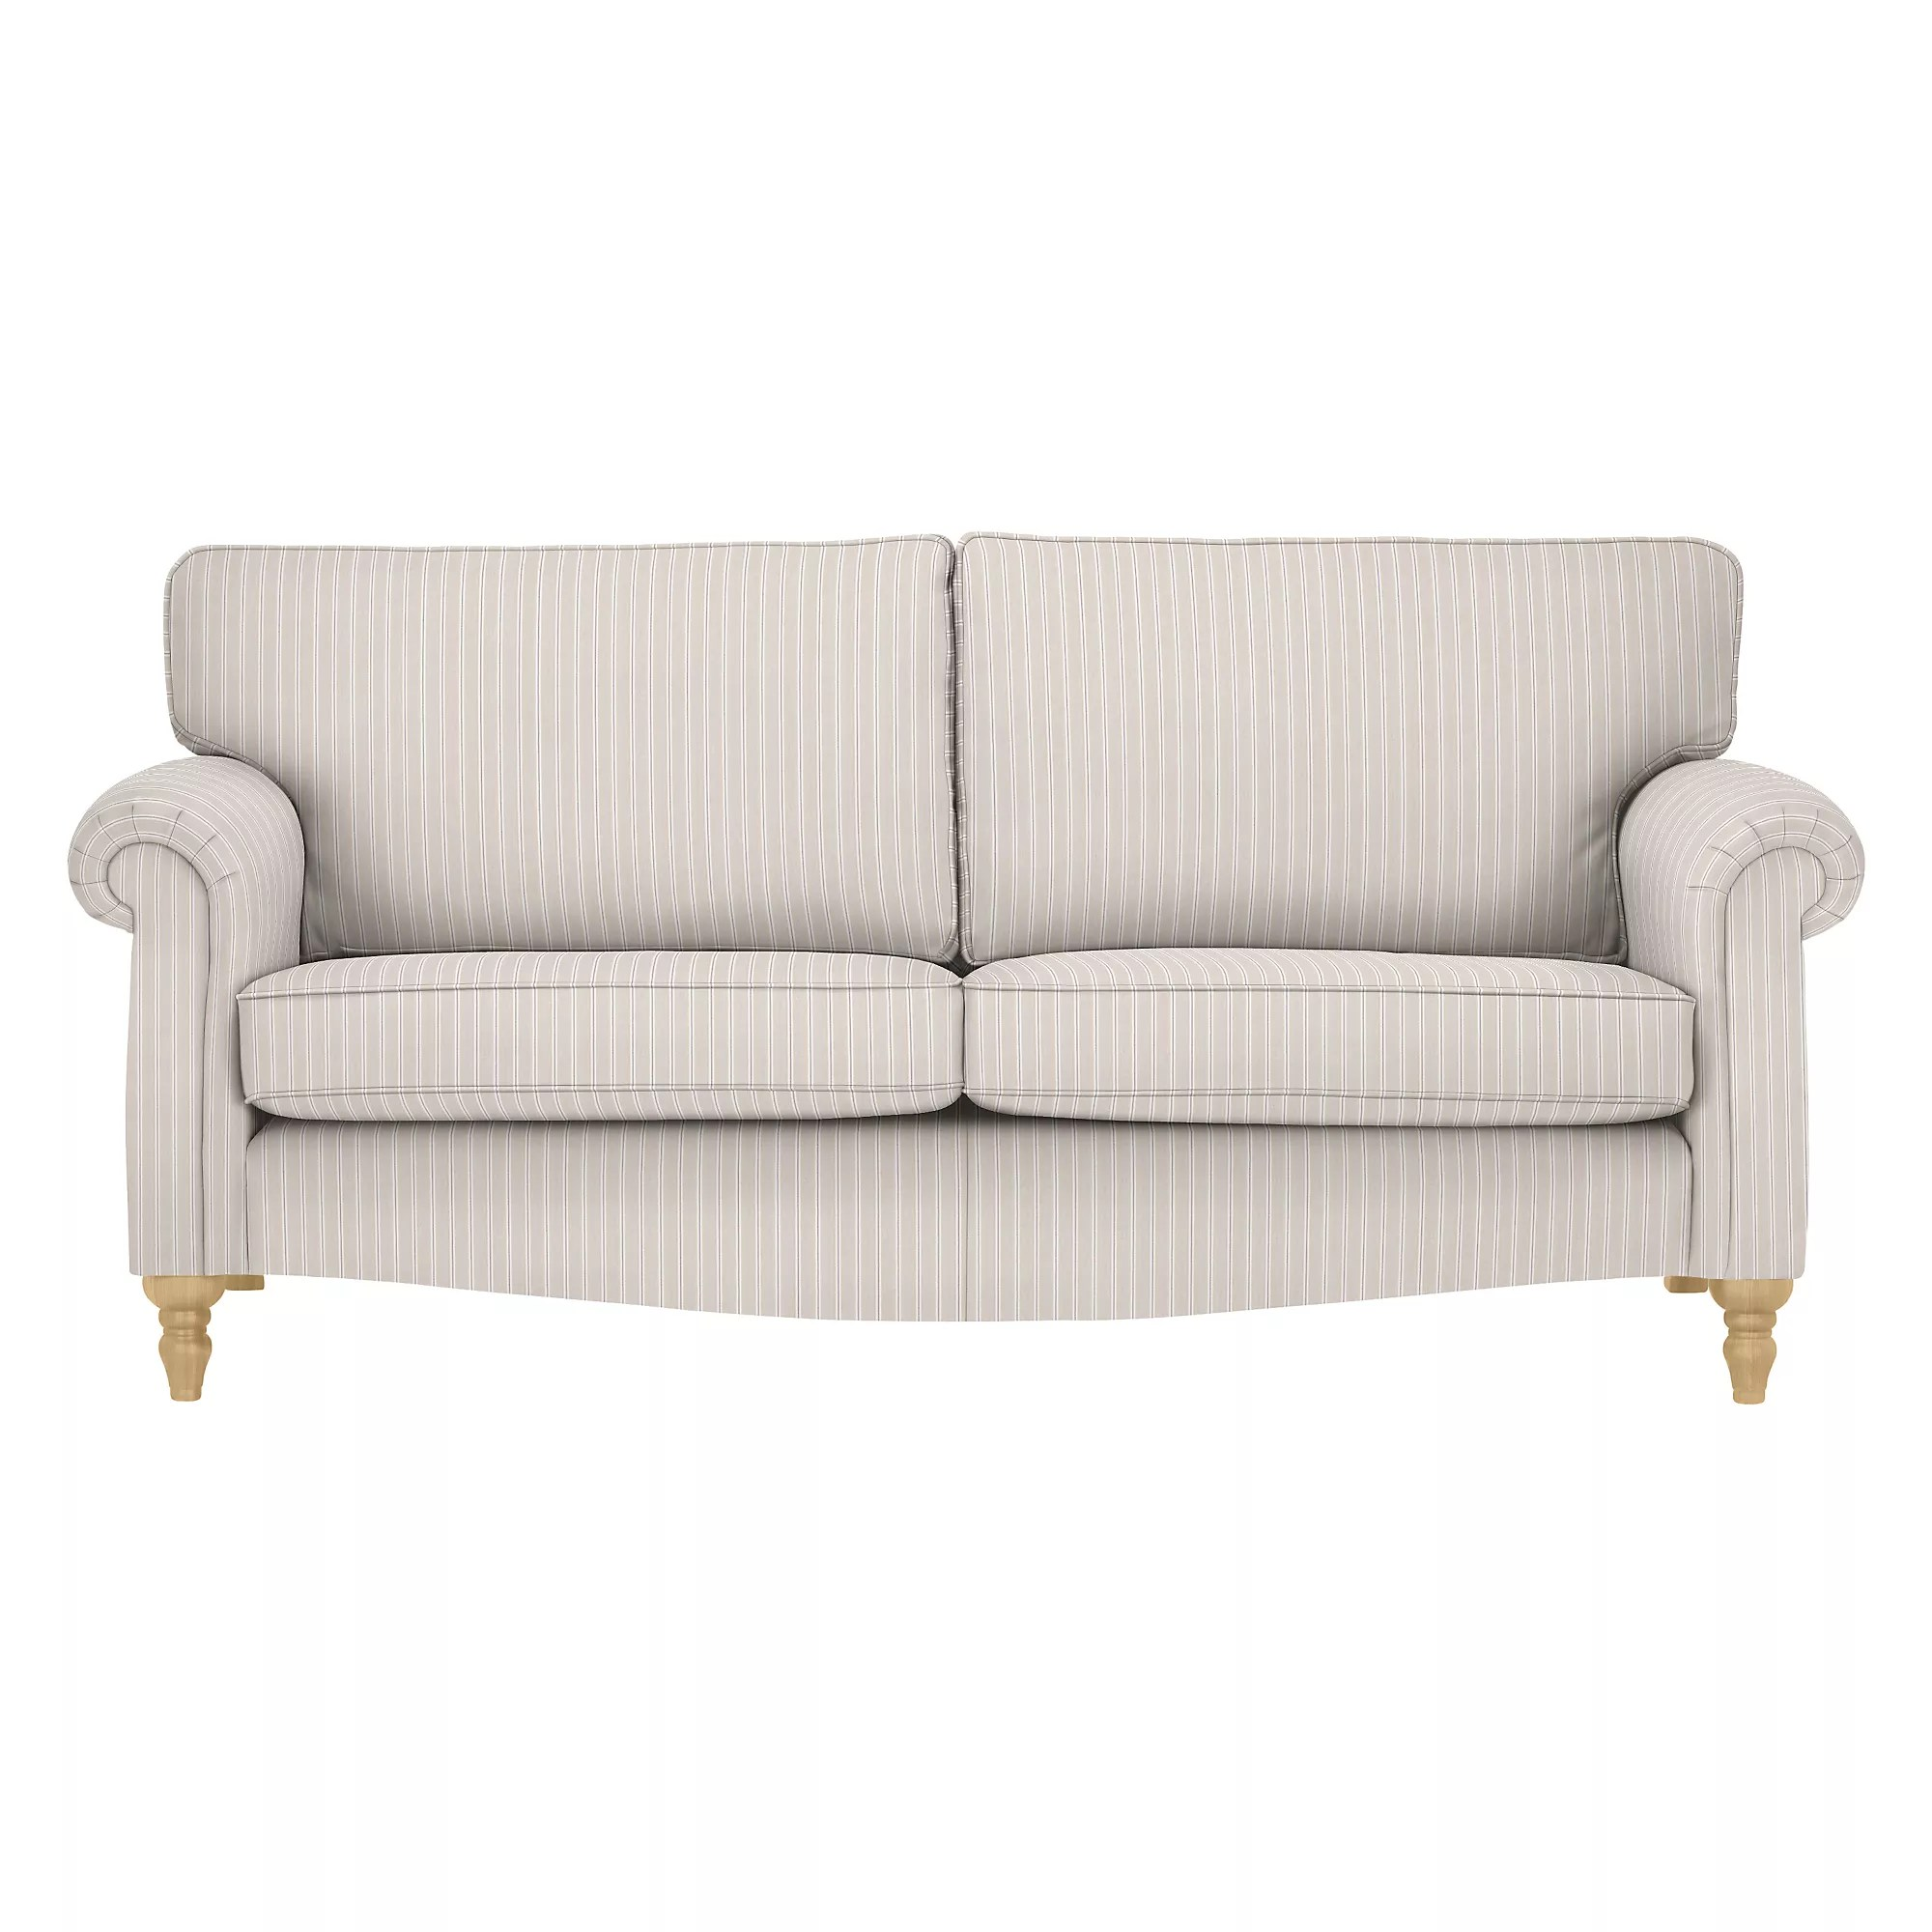 Sofa Berlin John Lewis Albany Large Sofa Berlin Stripe Natural Blue At John